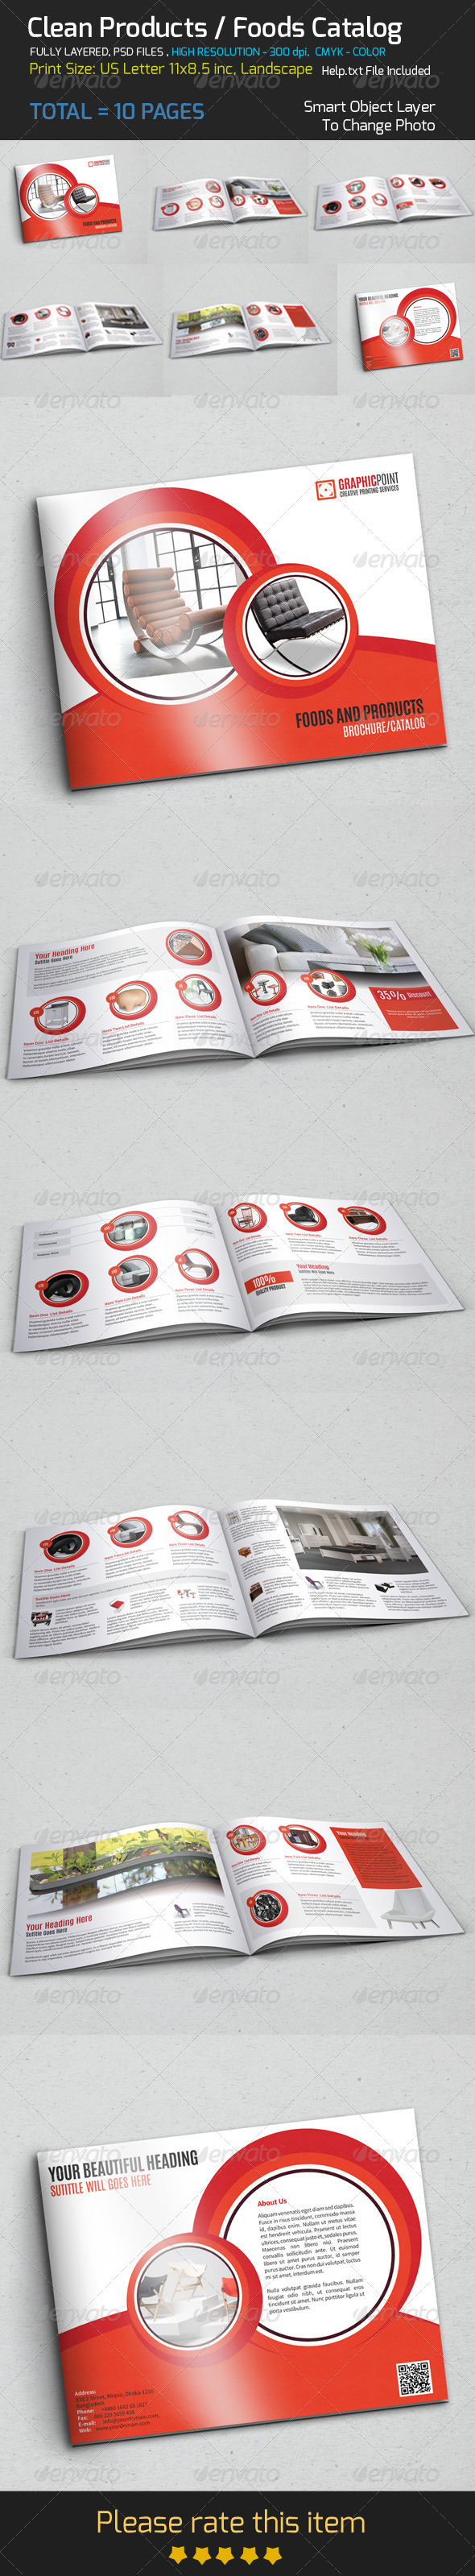 GraphicRiver Clean Products Foods Catalog 8679685